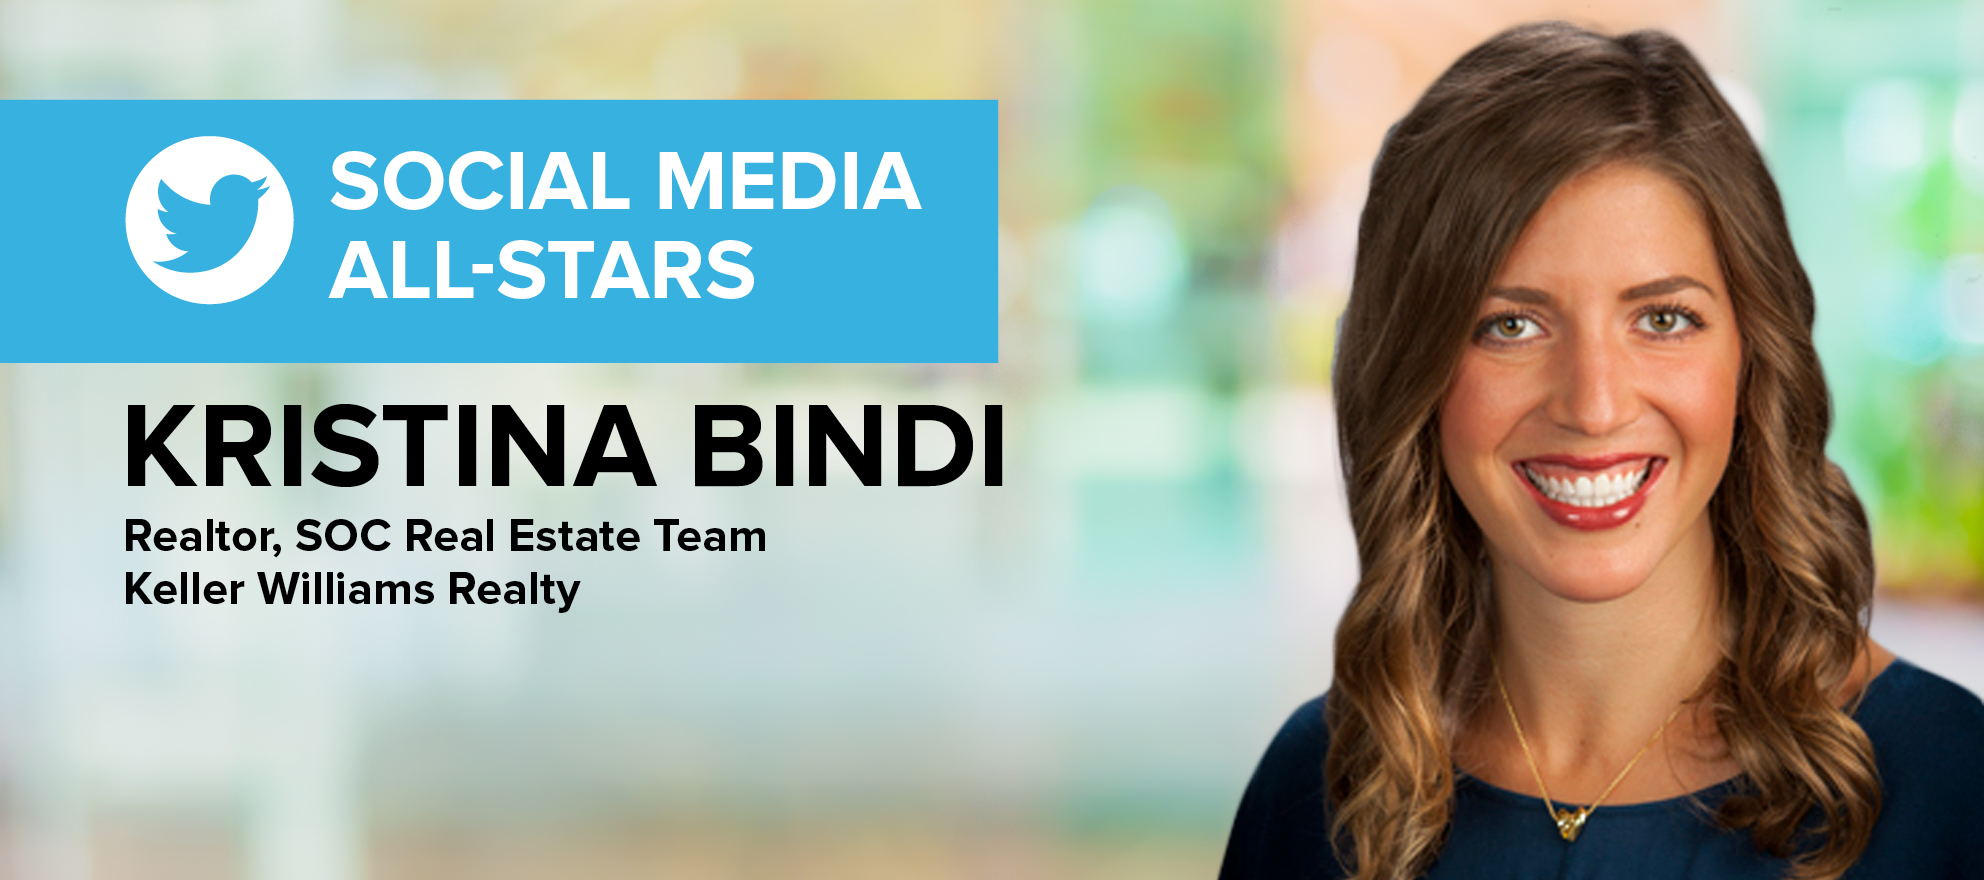 Kristina Bindi: 'Always reply to comments; be relatable, have a plan, track your results'